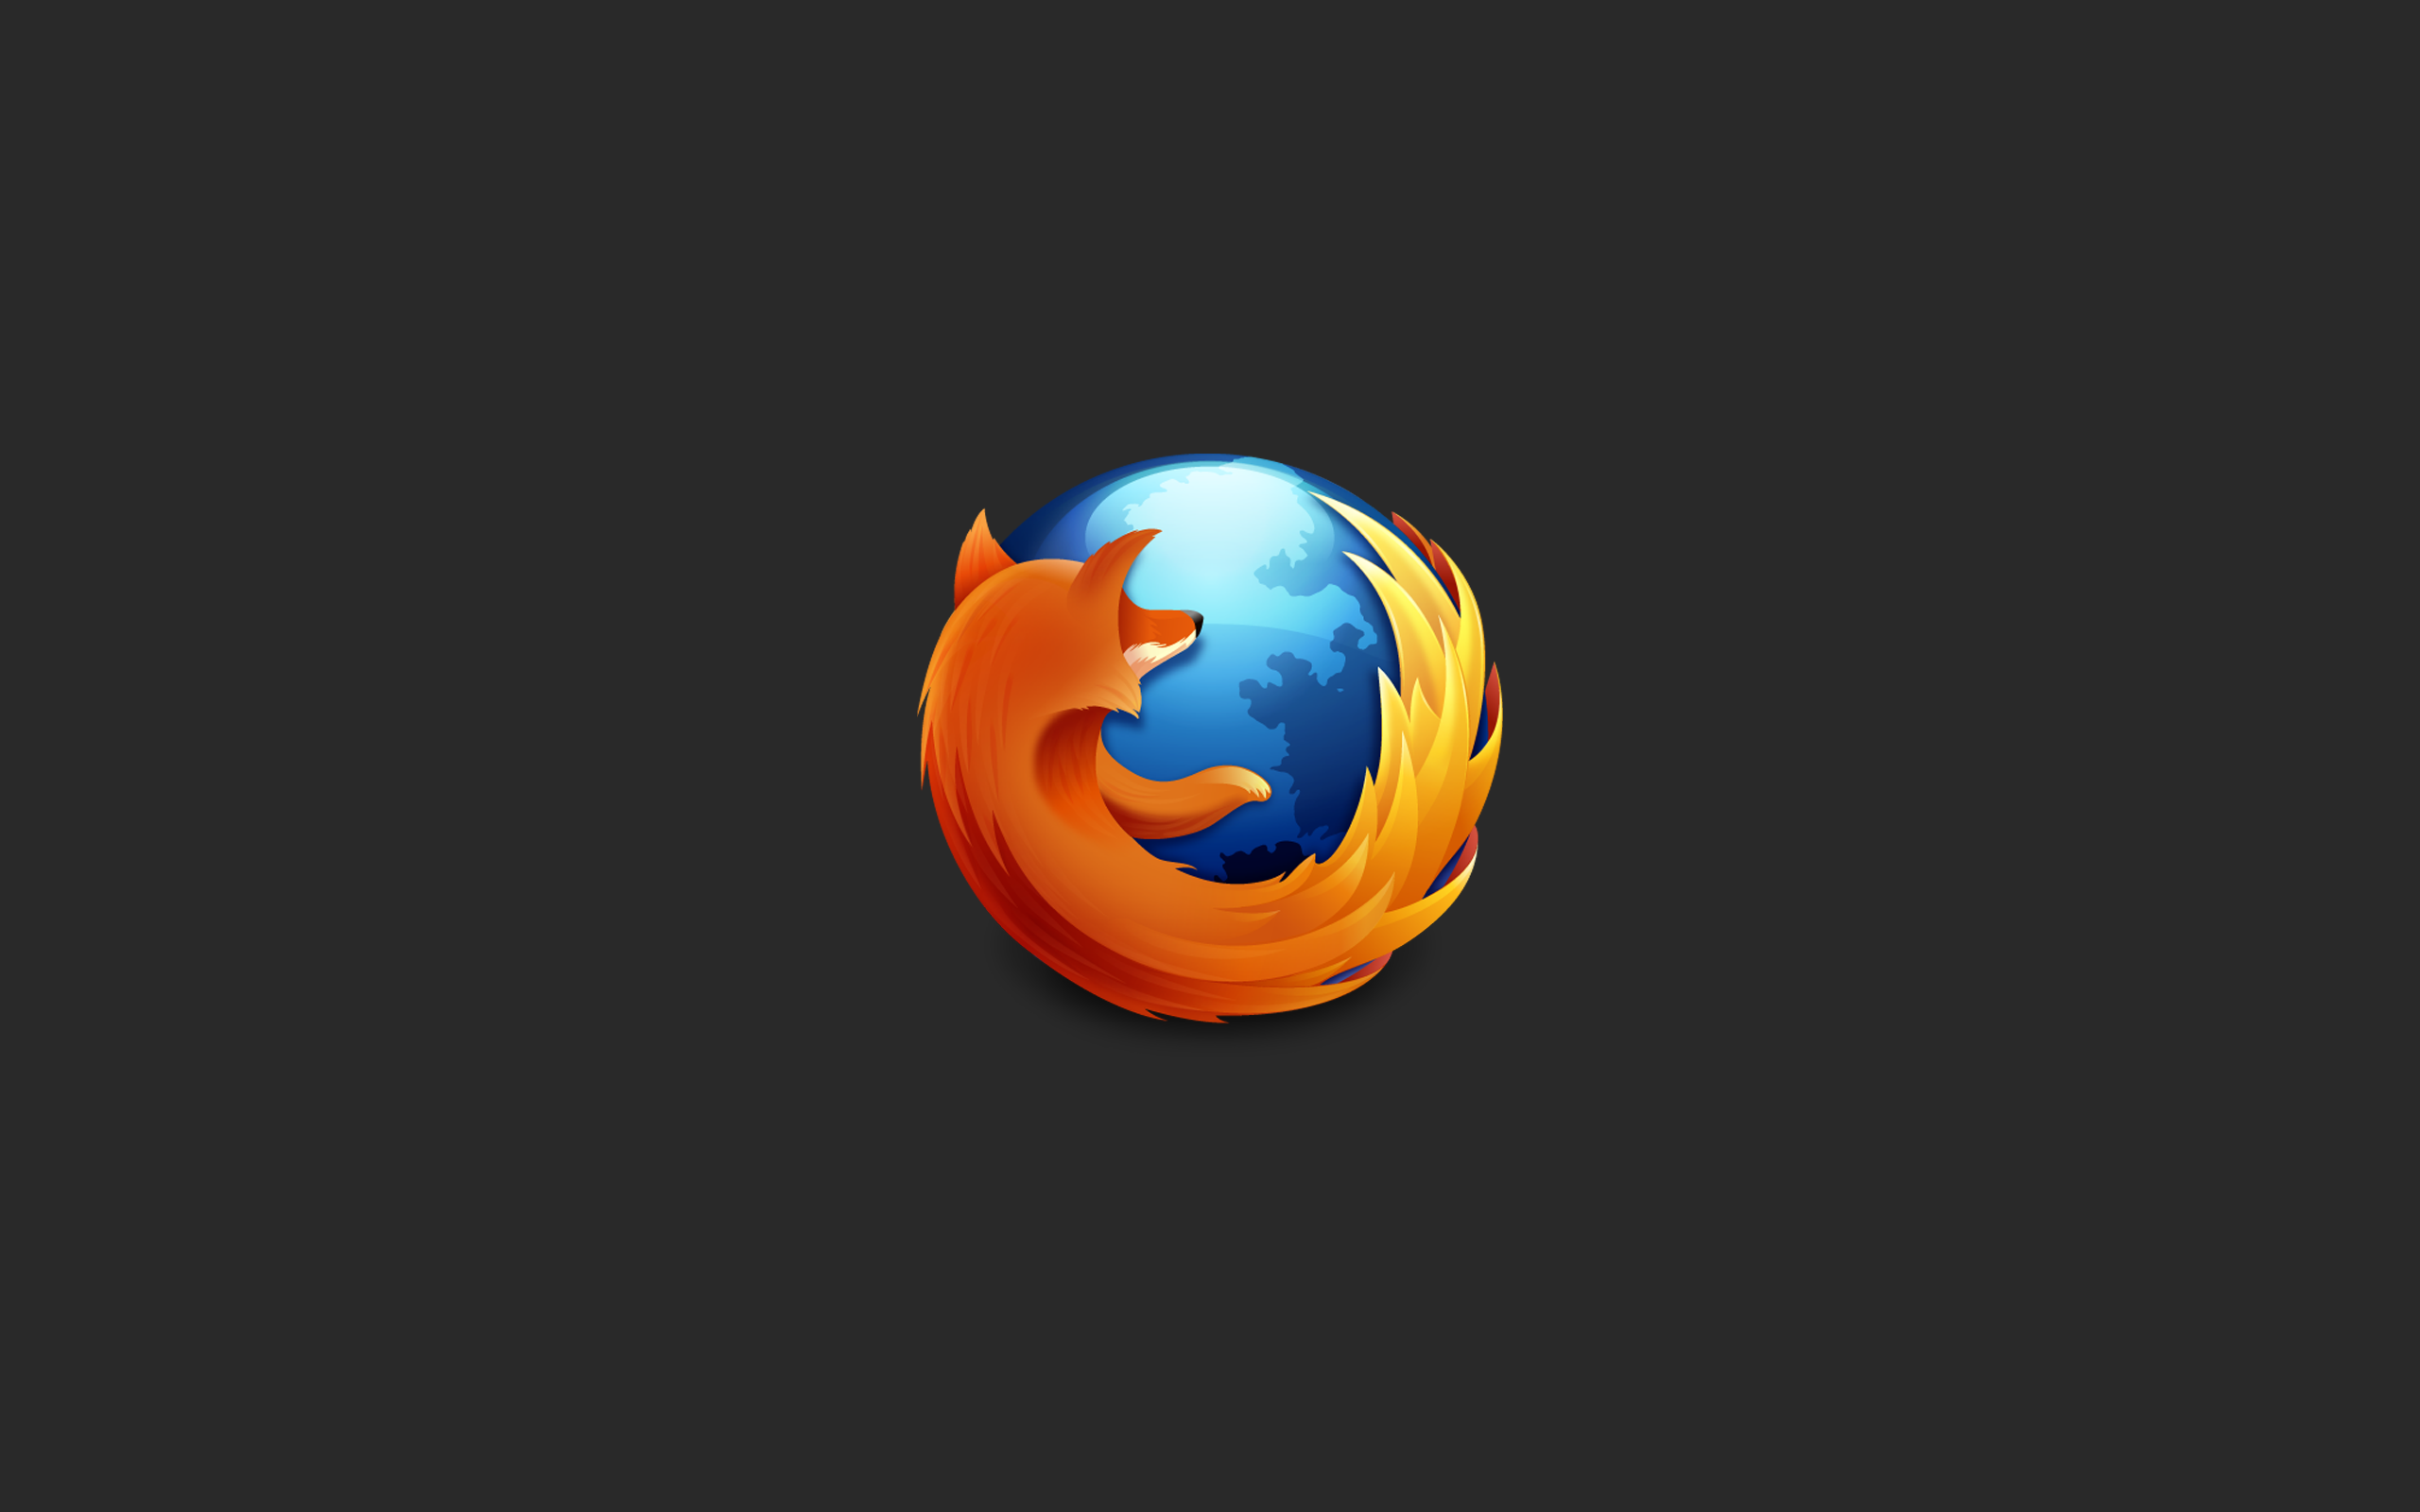 hd firefox logo wallpaper 67331